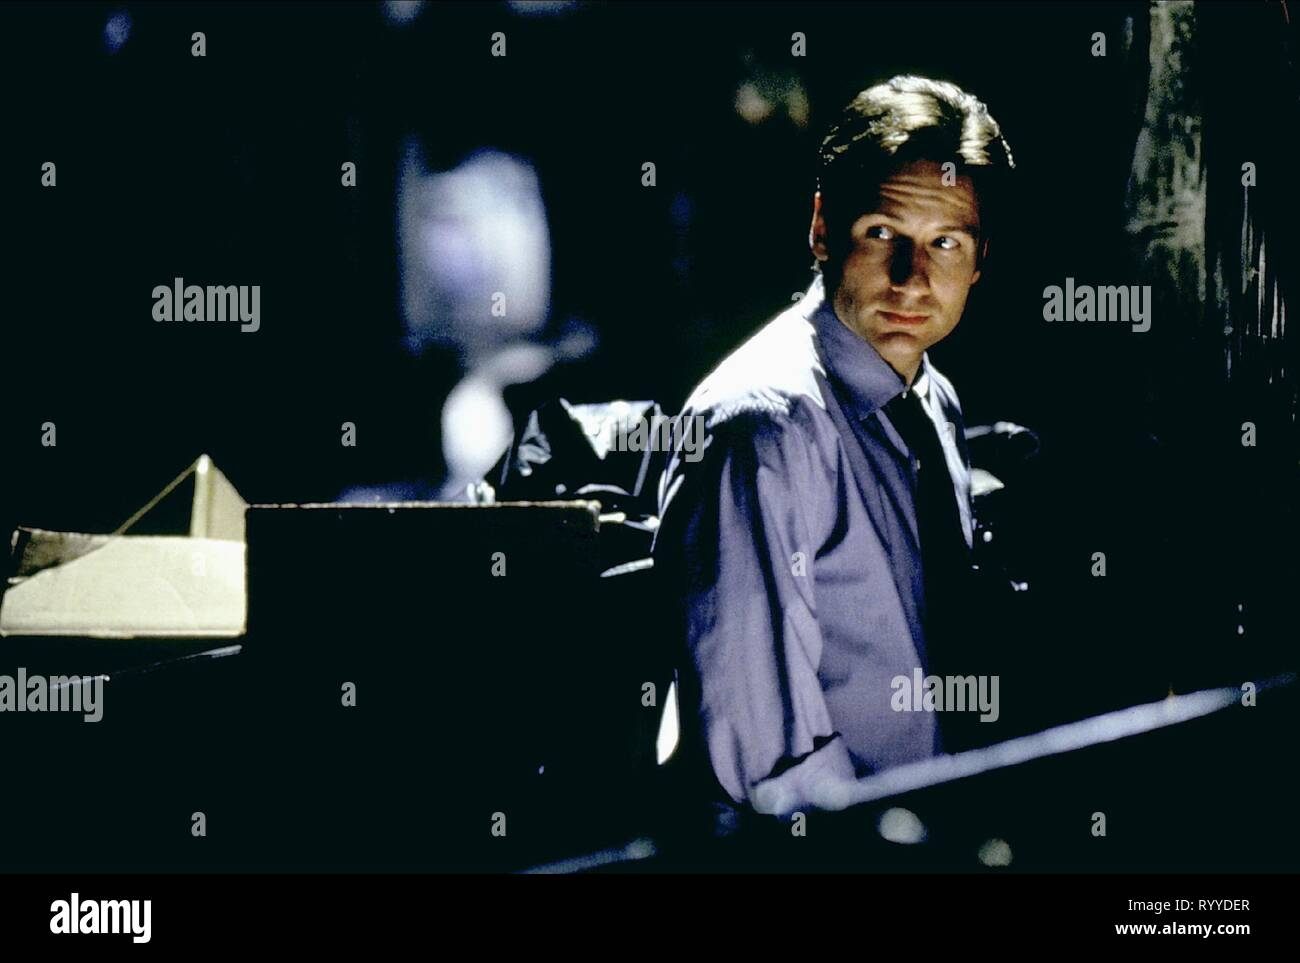 DAVID DUCHOVNY, THE X FILES, 1998 Stock Photo